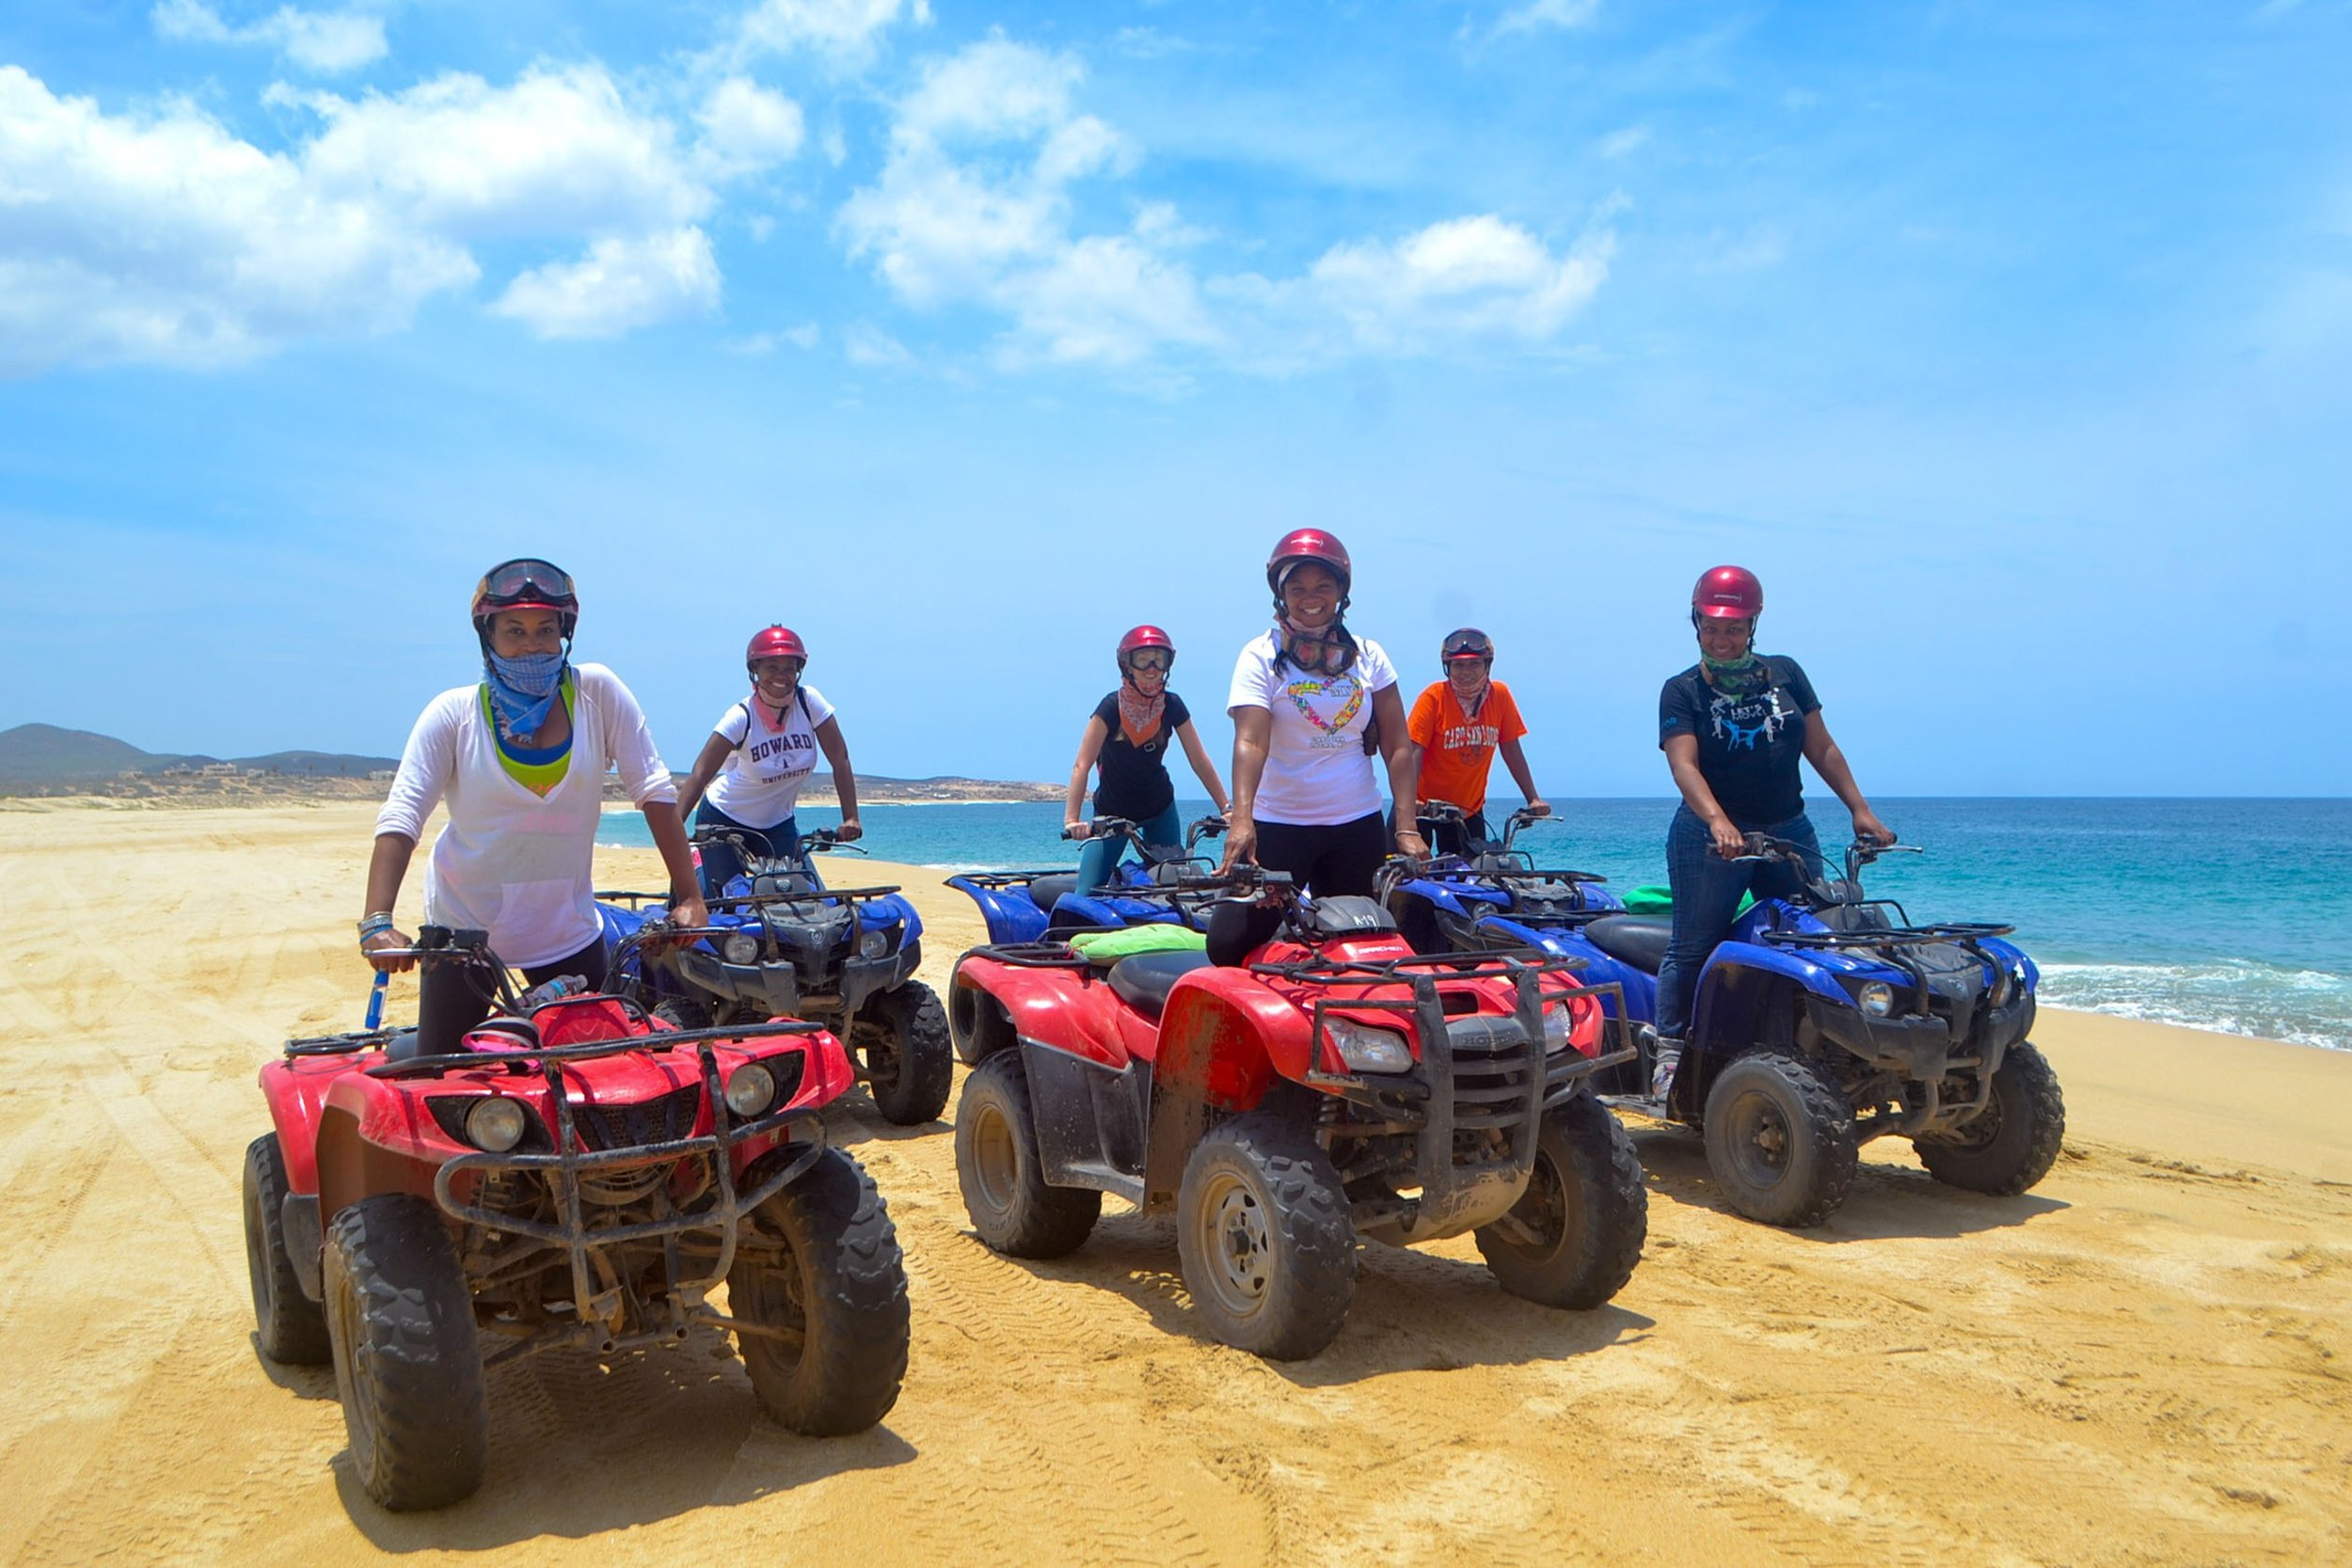 ATV RIDING  - Explores Los Cabos' beaches, desert landscapes, sand dunes, mountains, and gorgeous views of the Pacific Ocean all from an ATV. Get ready to FEEL THE RUSH!